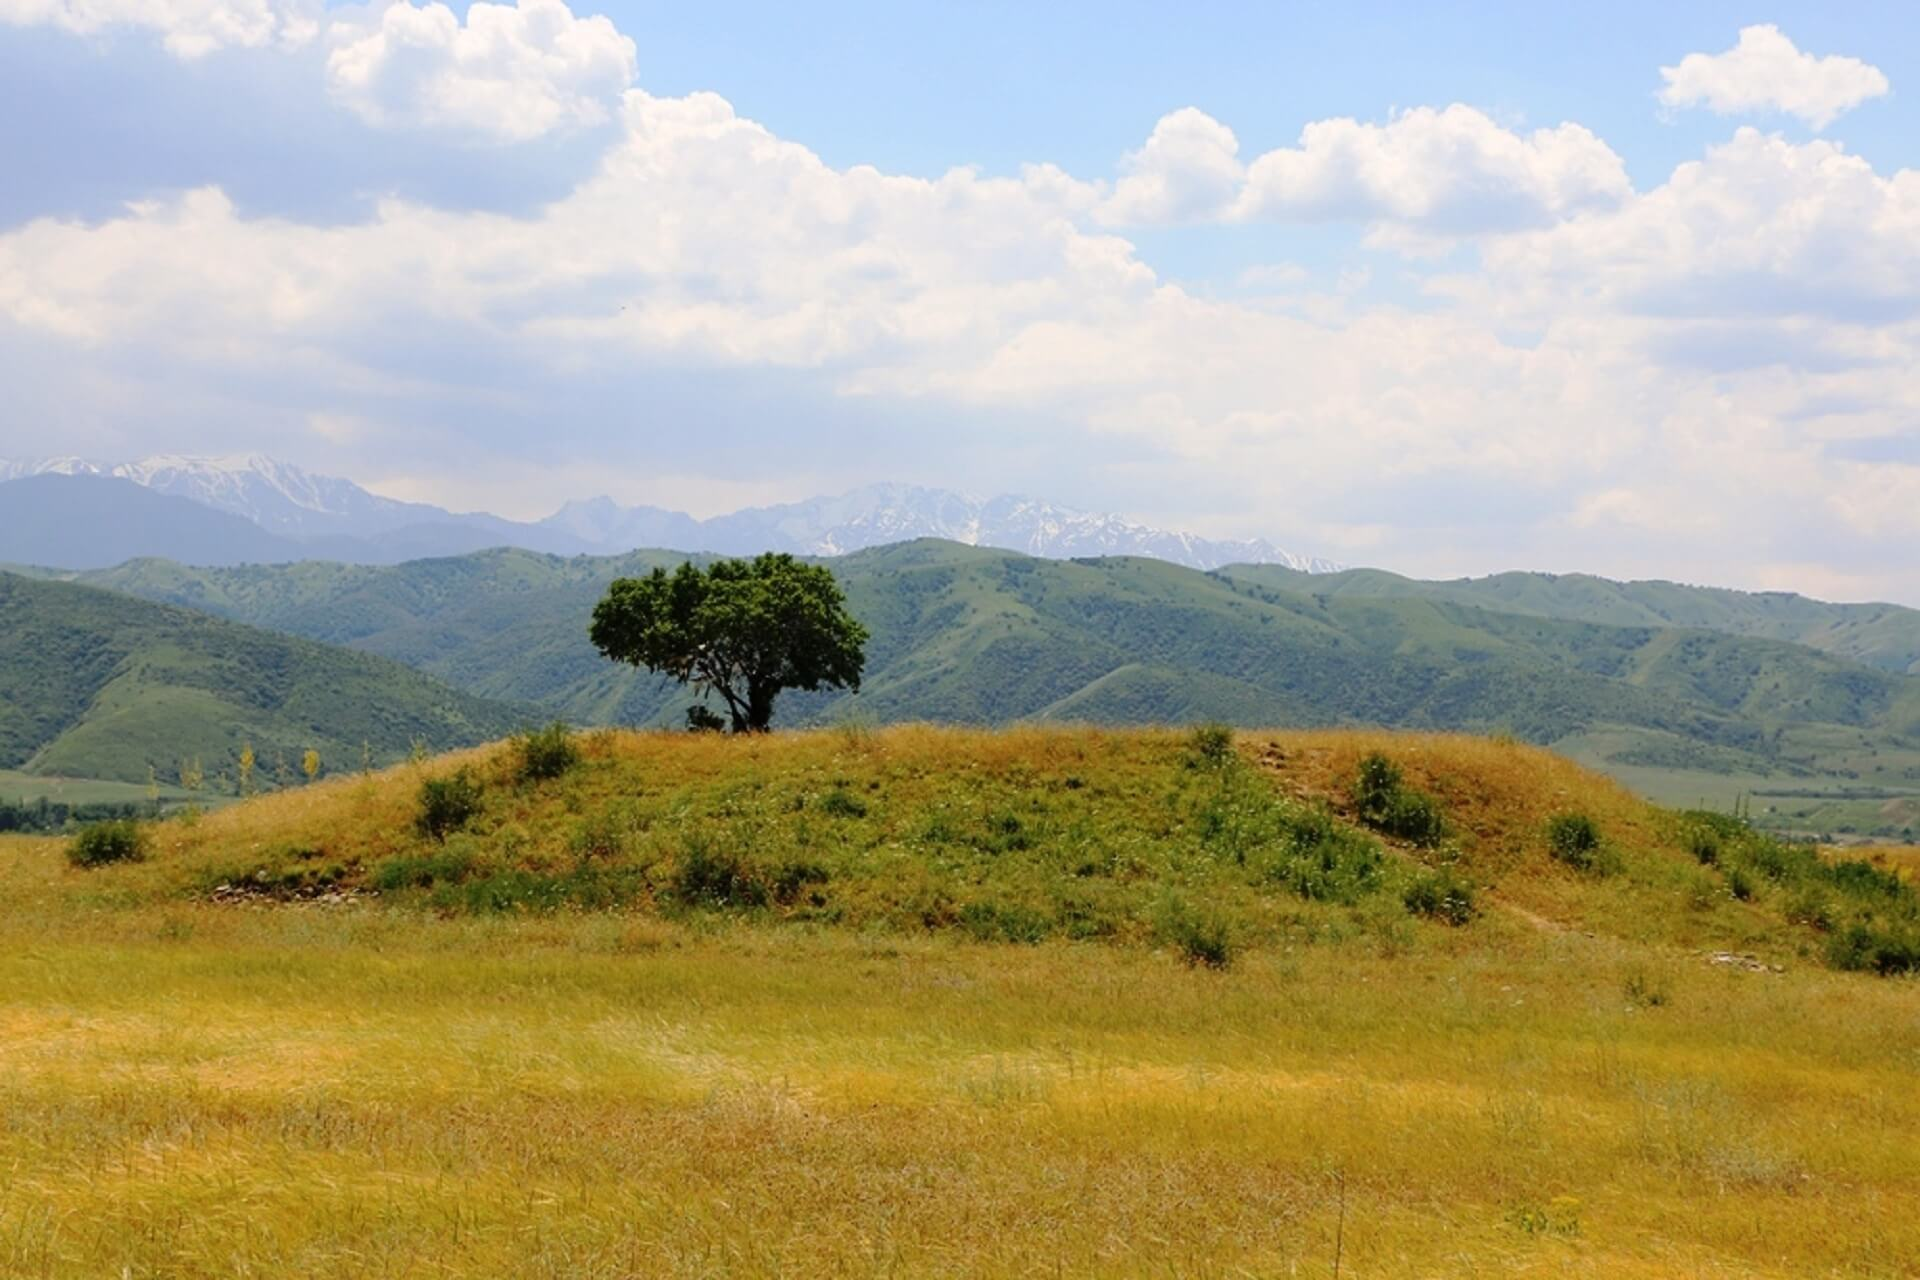 The mound Issyk, Turgen gorge and Plateau Assy